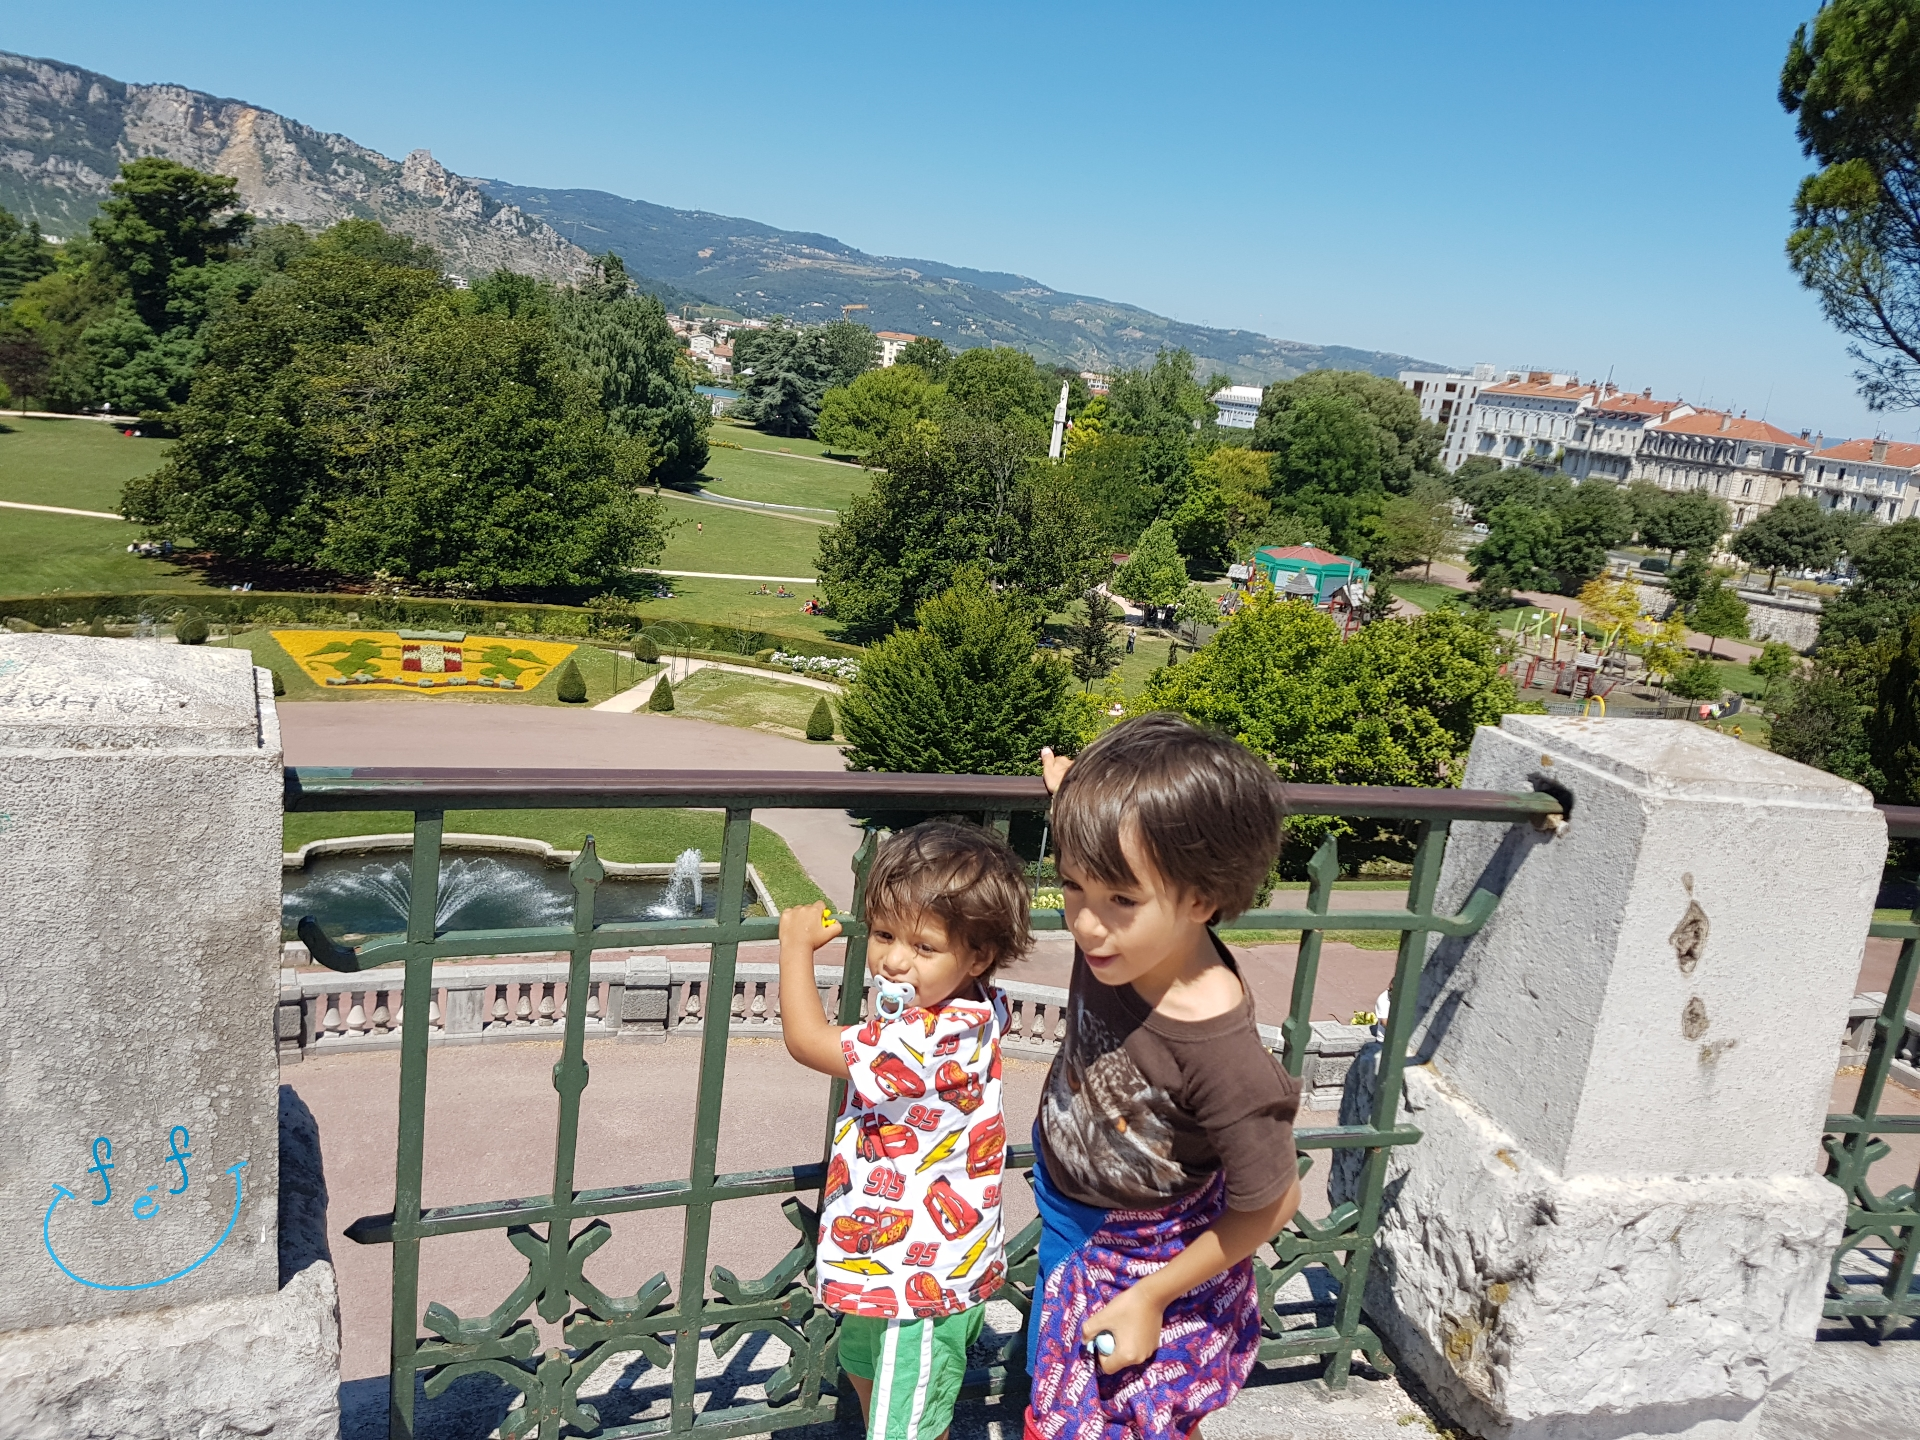 Two young children at the entrance of Parc Jouvet, overlooking the luscious greenspace of the park.  #FreeElectrons.Family - camping road trip Europe, Valence.